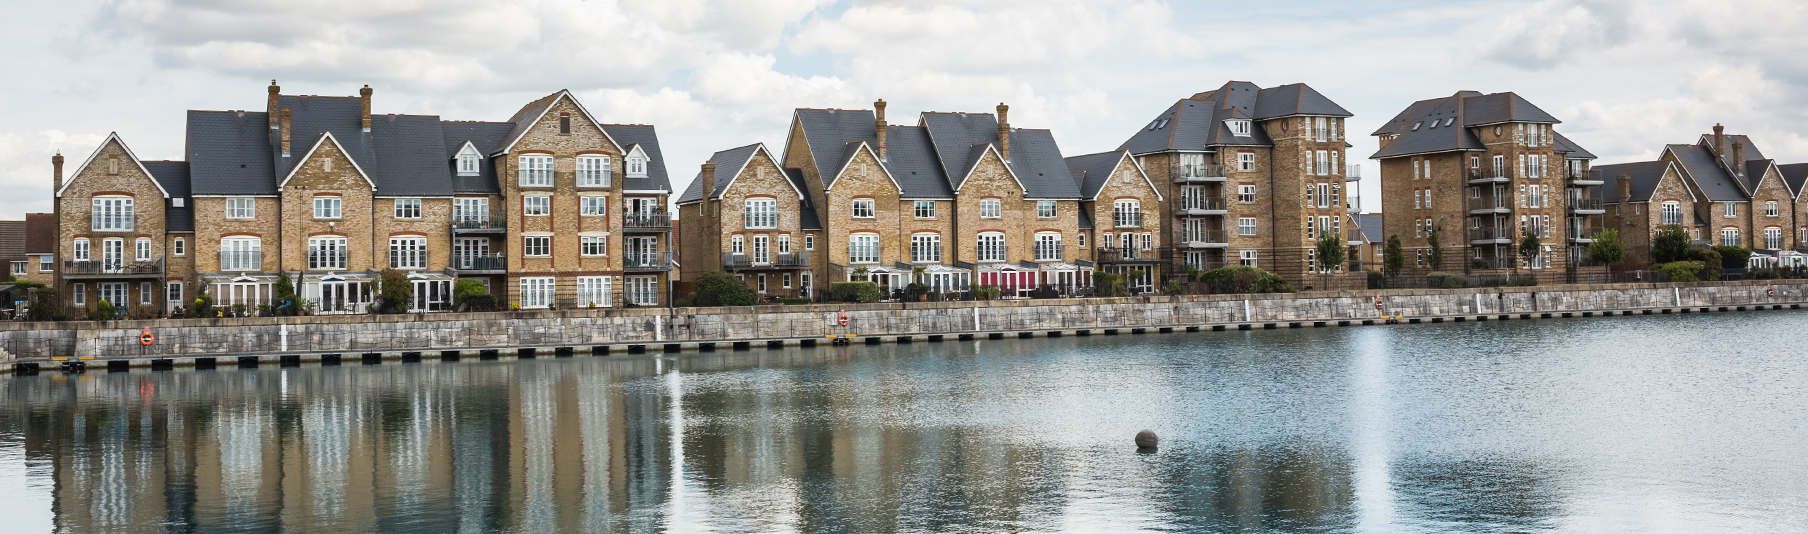 Property Insurance: Terraced houses and their reflection in the river opposite